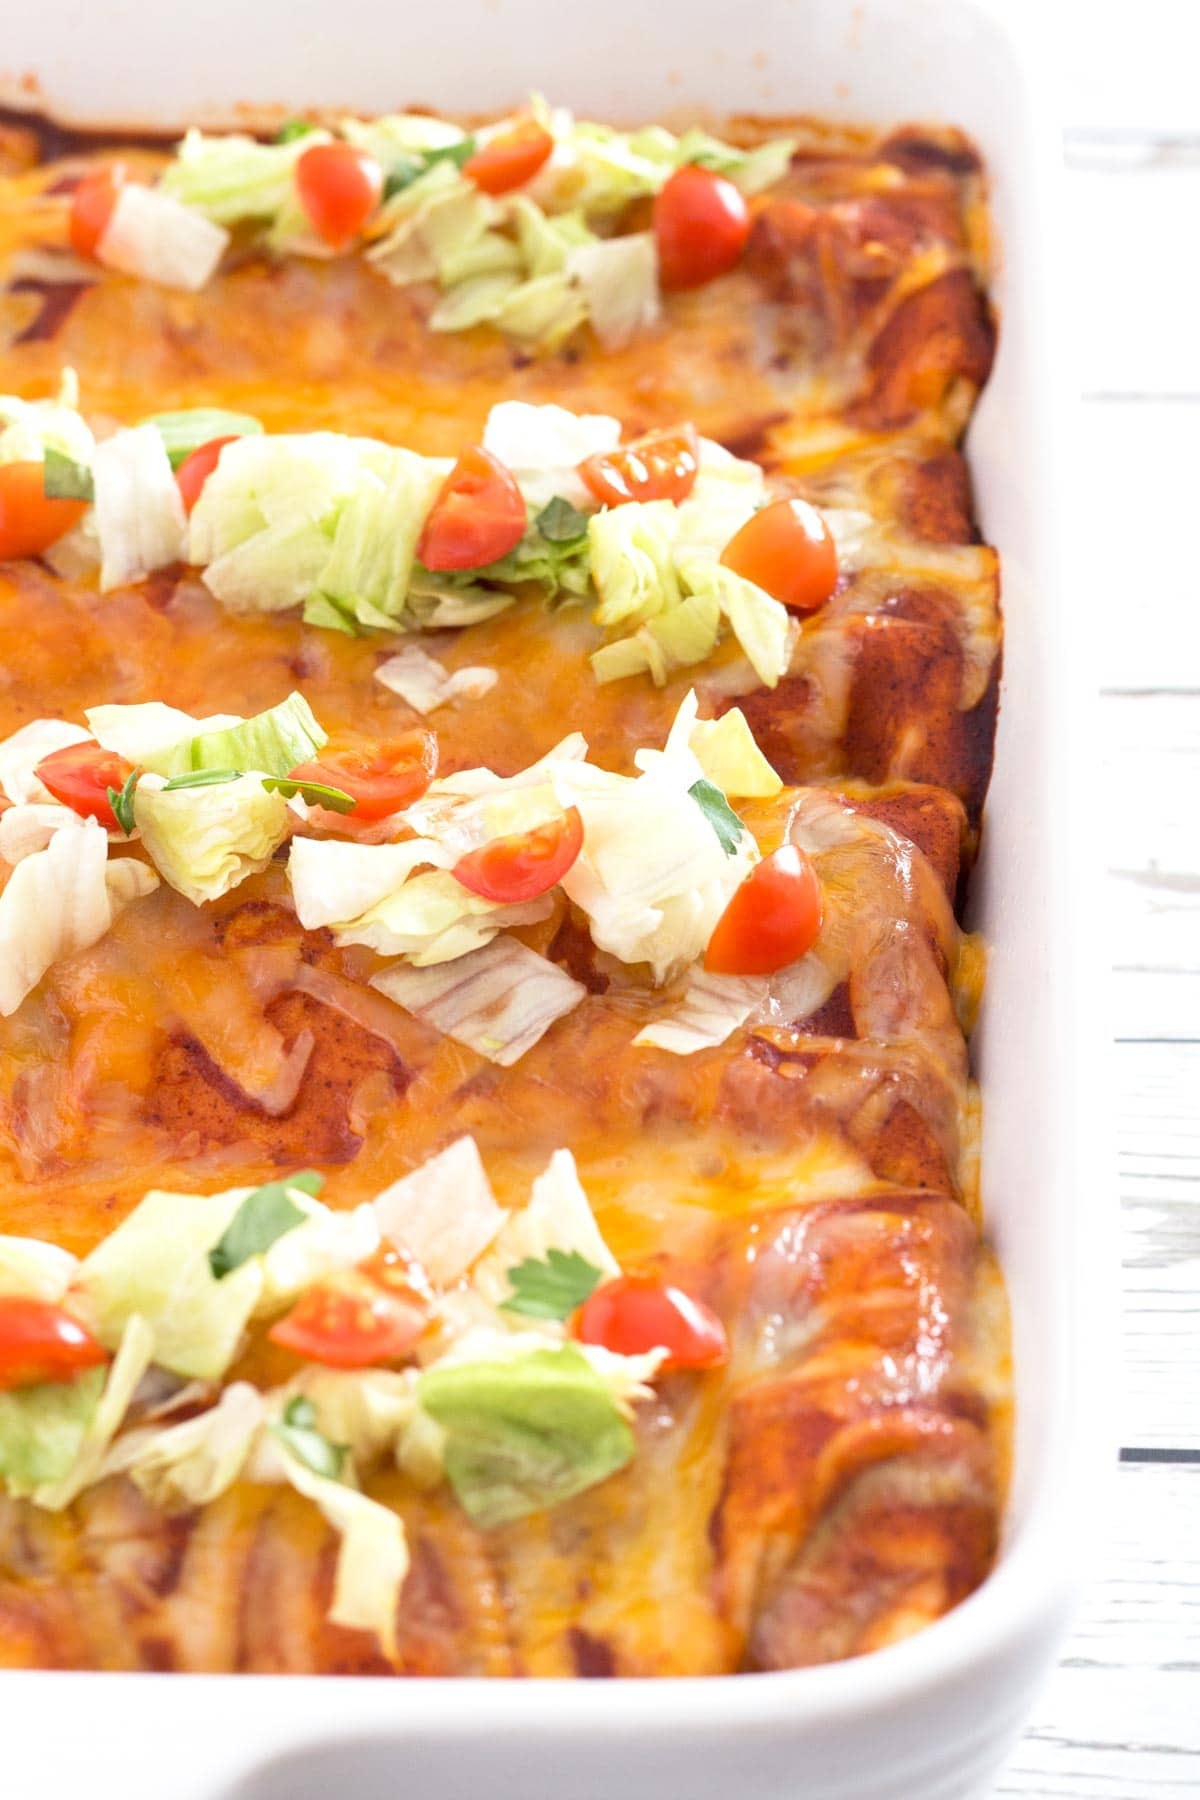 White baking dish with row of smothered wet burritos with toppings.